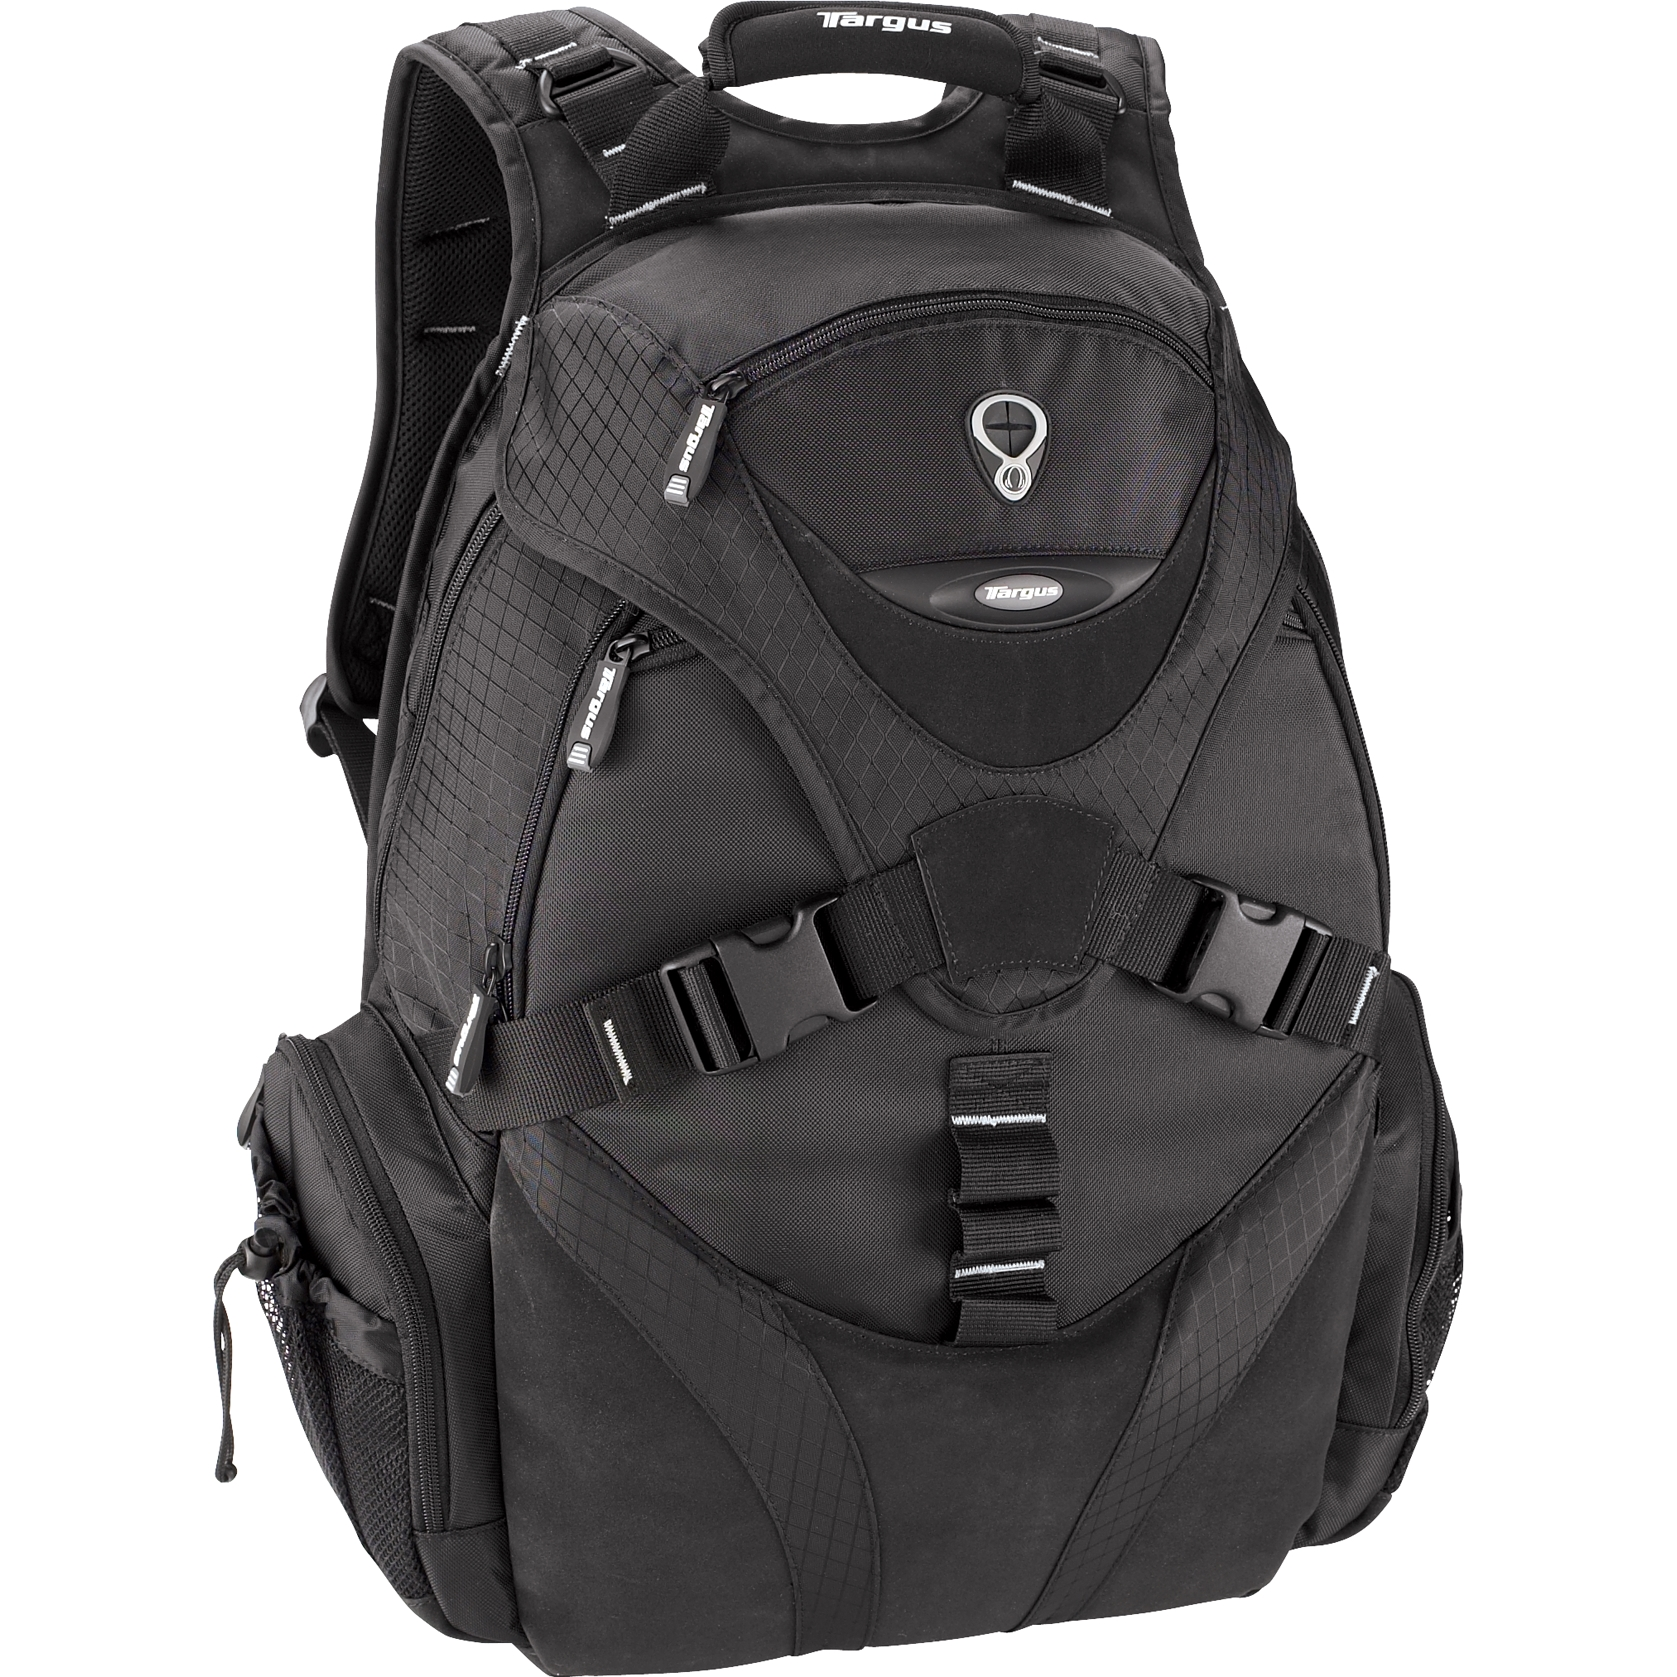 dfc93a7c09 Picture of Voyager Laptop Backpack (Black)